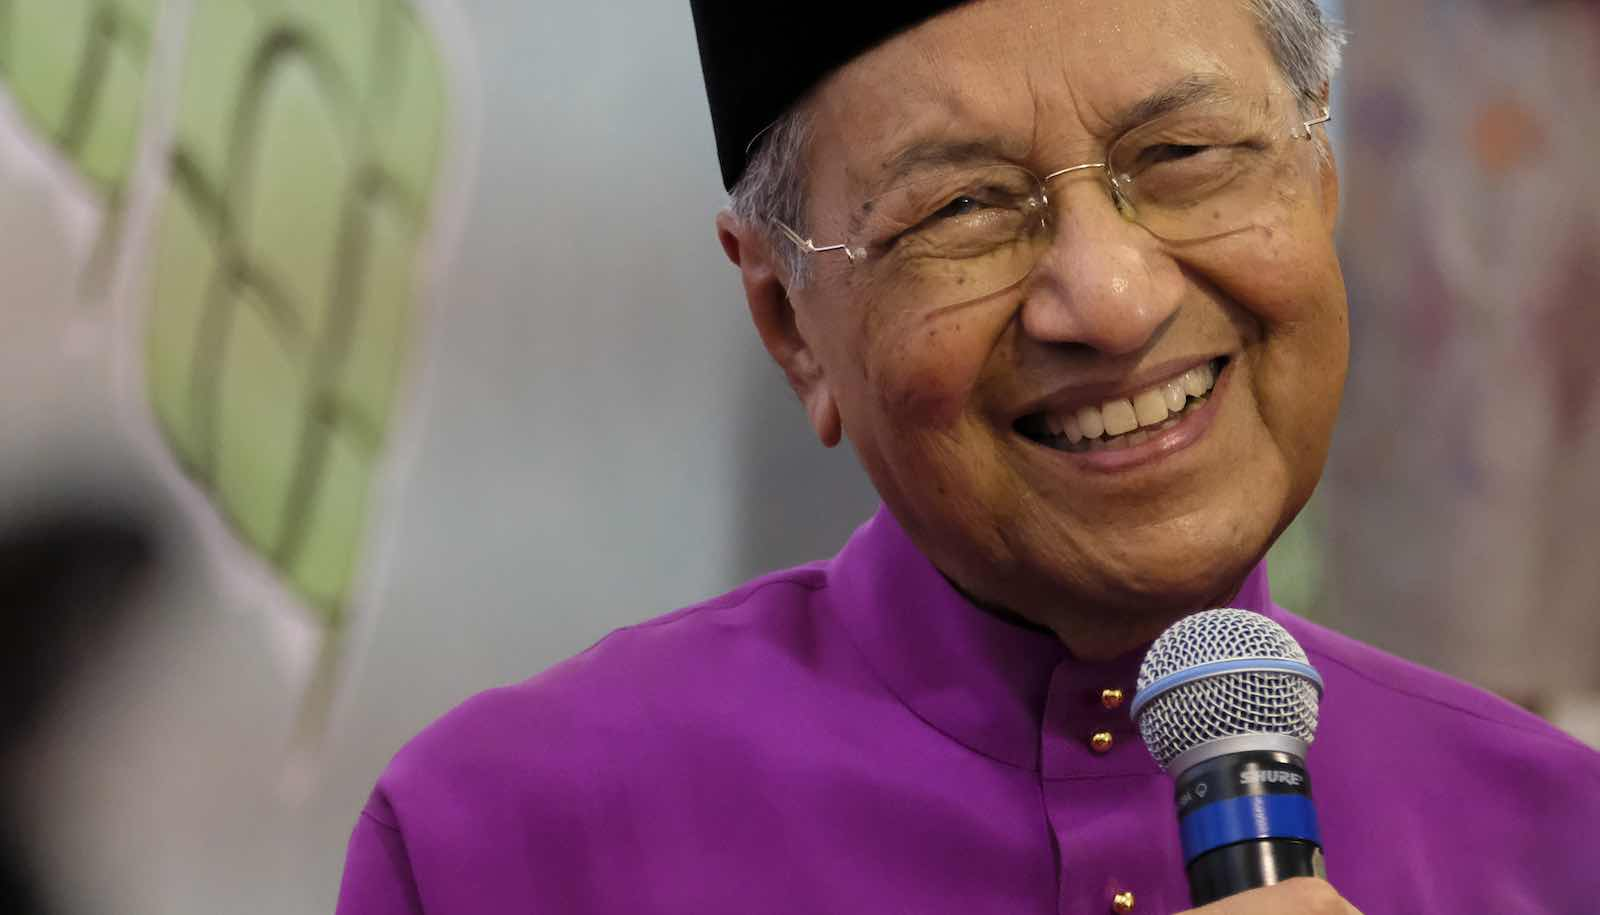 Malaysian Prime Minister Mahathir Mohamad at his official residence in Putrajaya (Photo: Faris Hadziq via Getty)